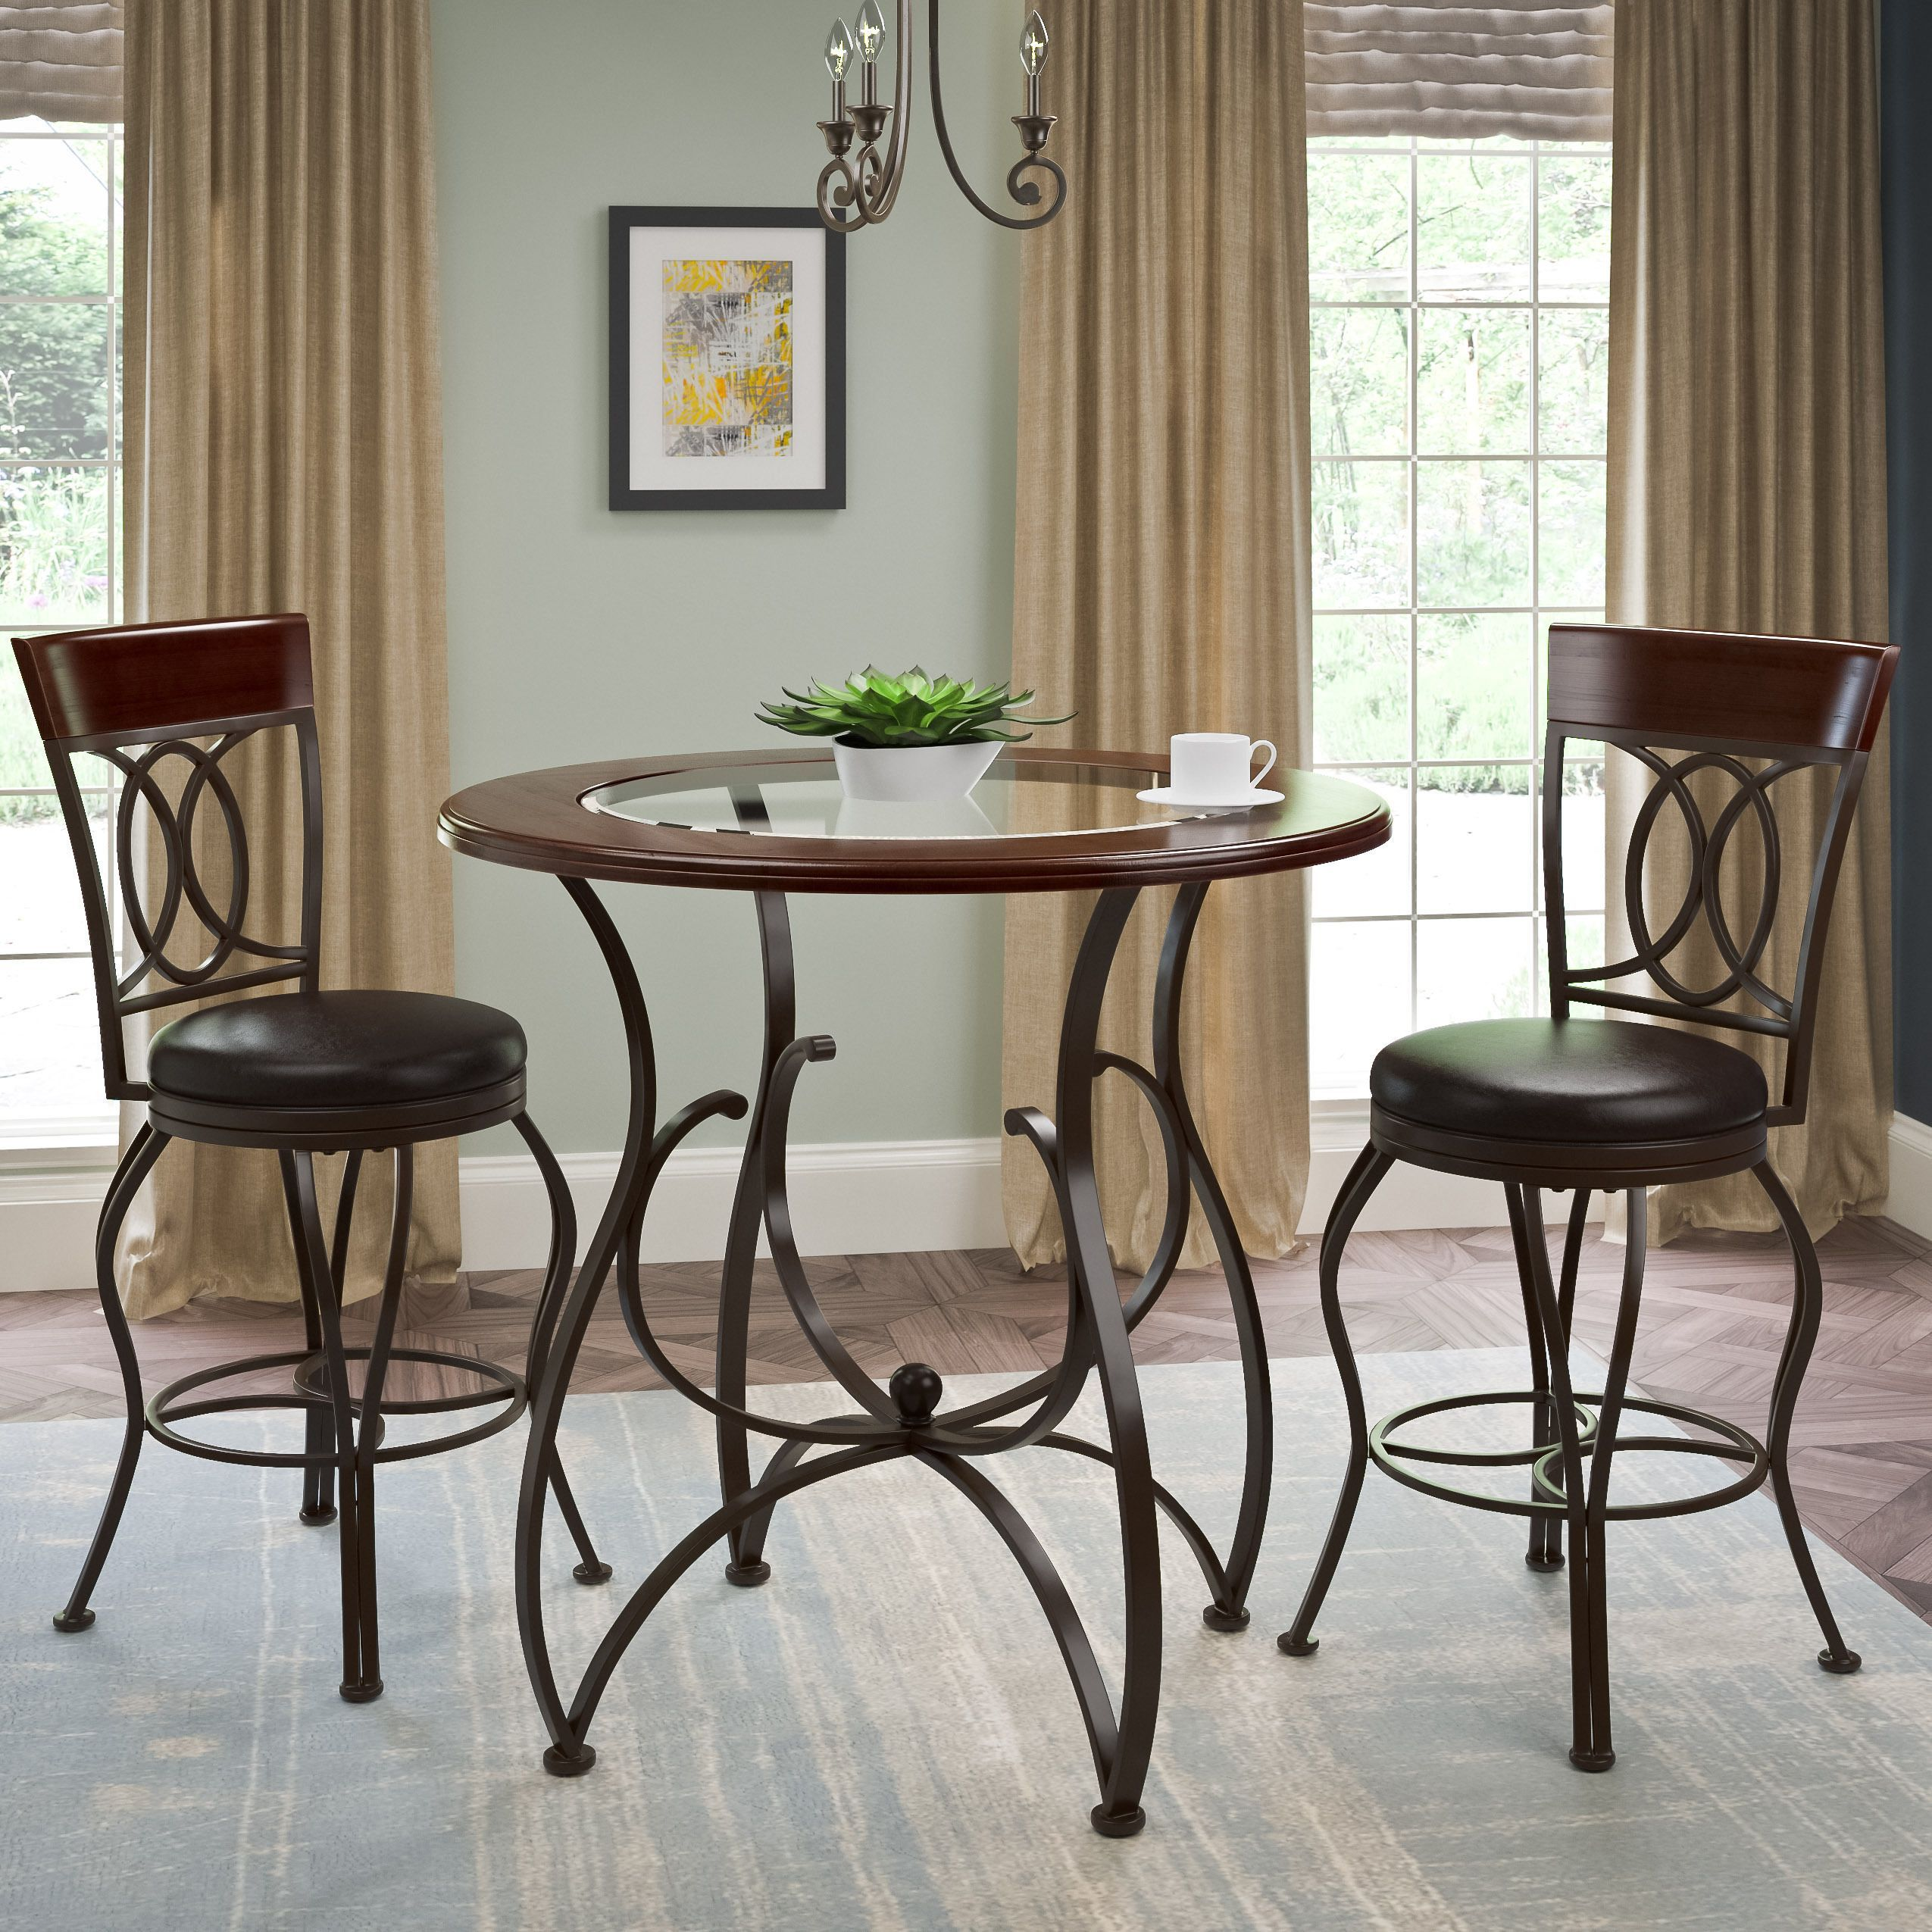 insight and to back best bistro chairs home set table kitchen today designs